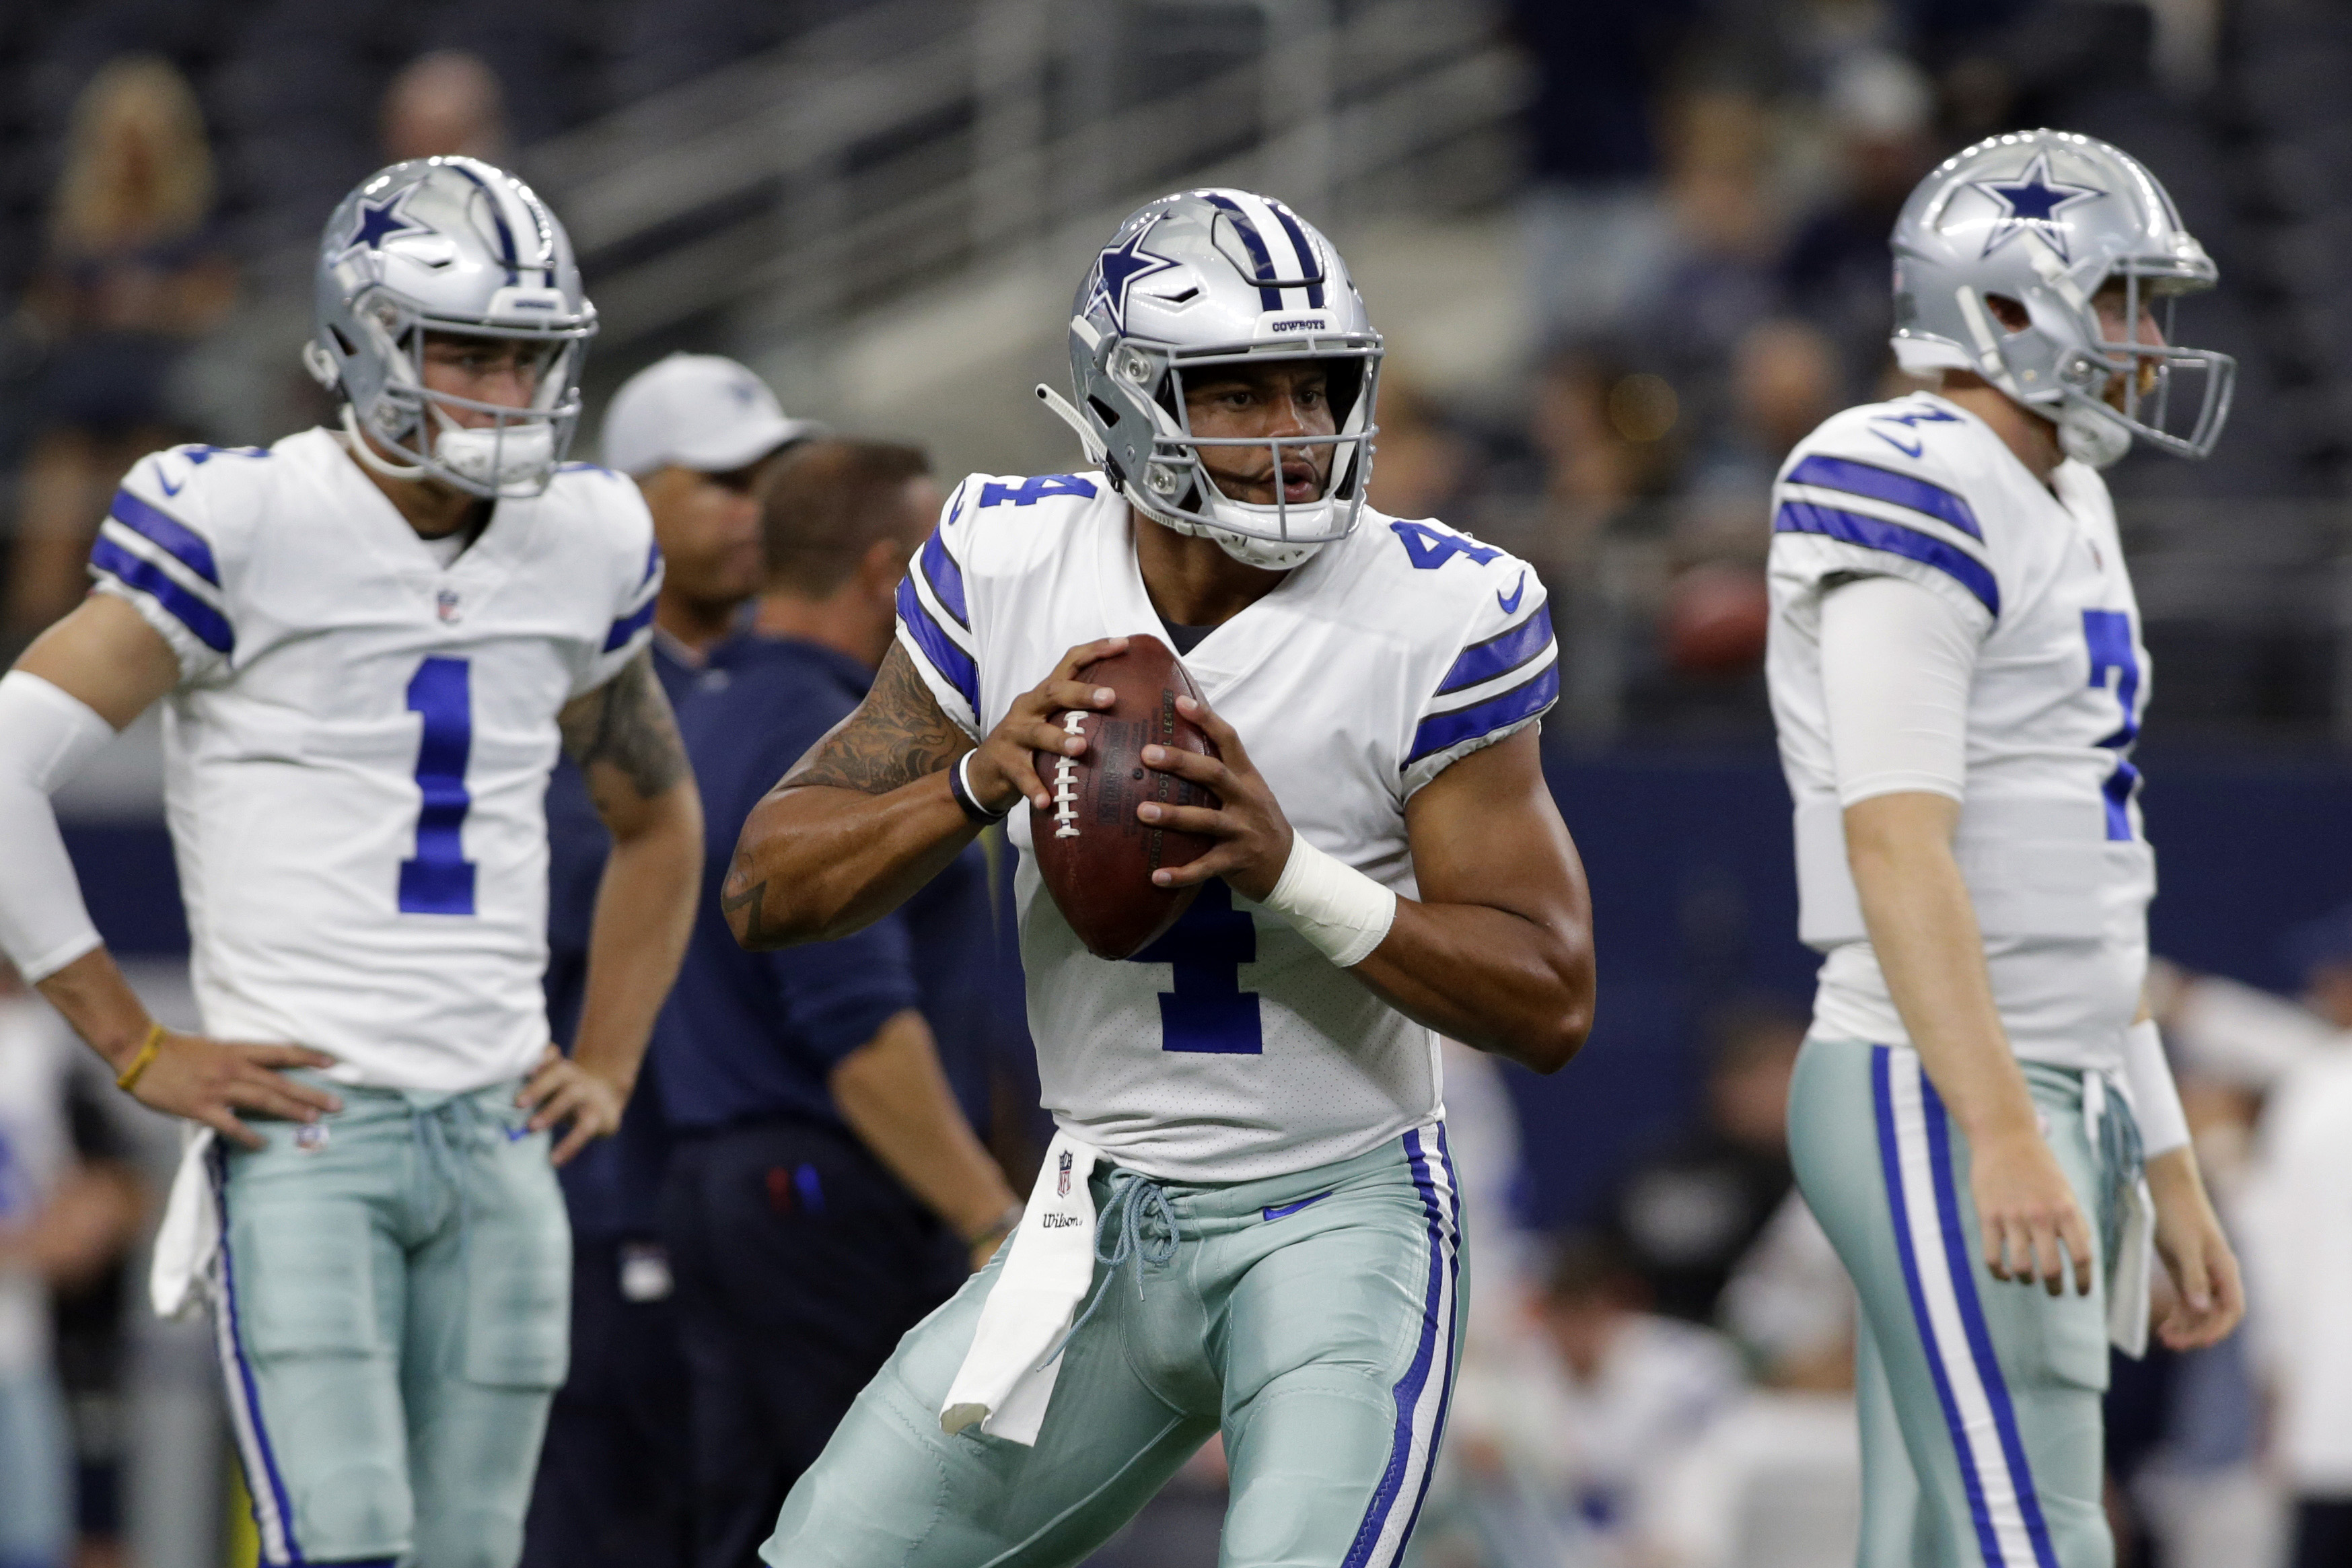 Aug 18, 2018; Arlington, TX, USA; Dallas Cowboys quarterback Dak Prescott (4) throws a pass during warm ups before the game against the Cincinnati Bengals at AT&T Stadium. Mandatory Credit: Tim Heitman-USA TODAY Sports